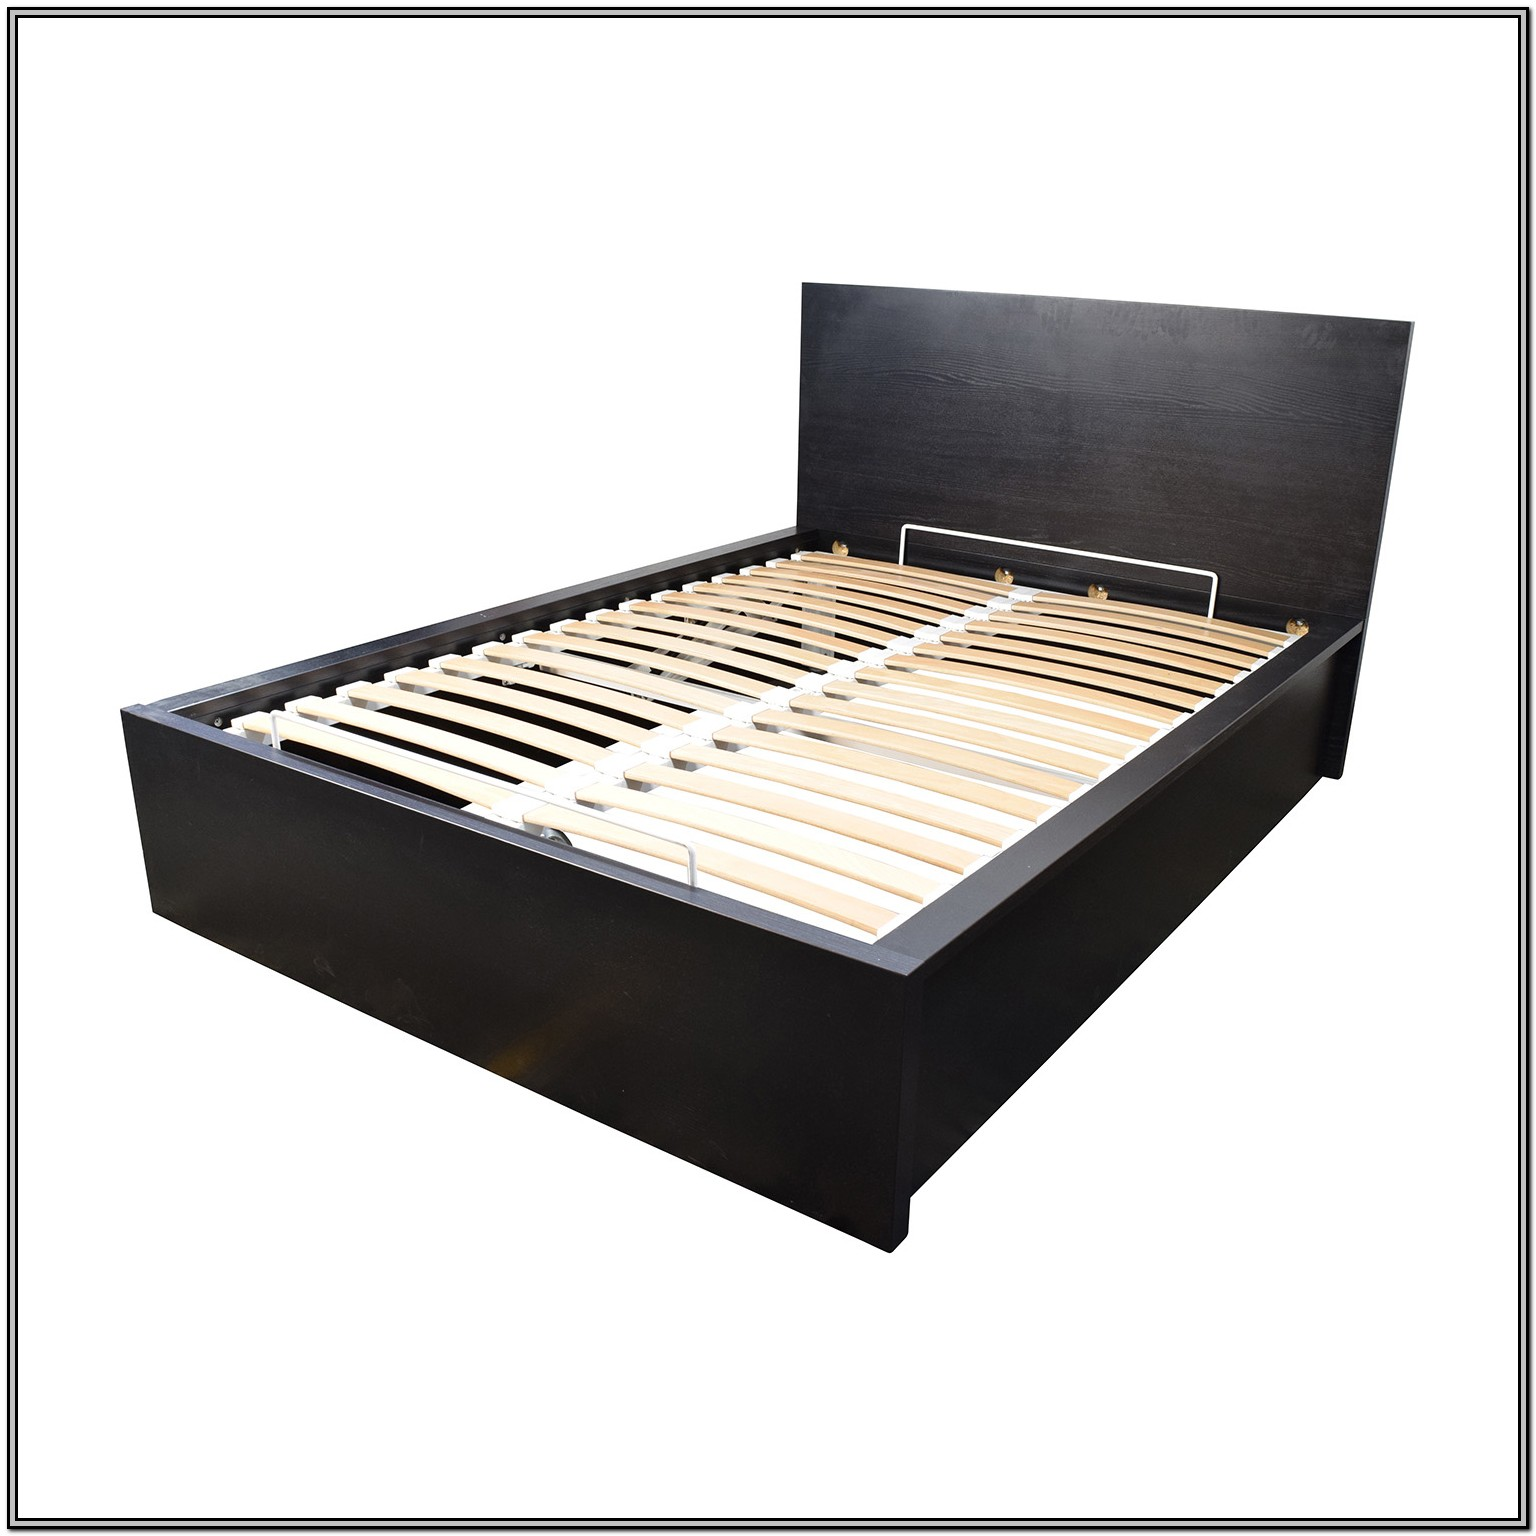 Ikea Bed With Storage Under